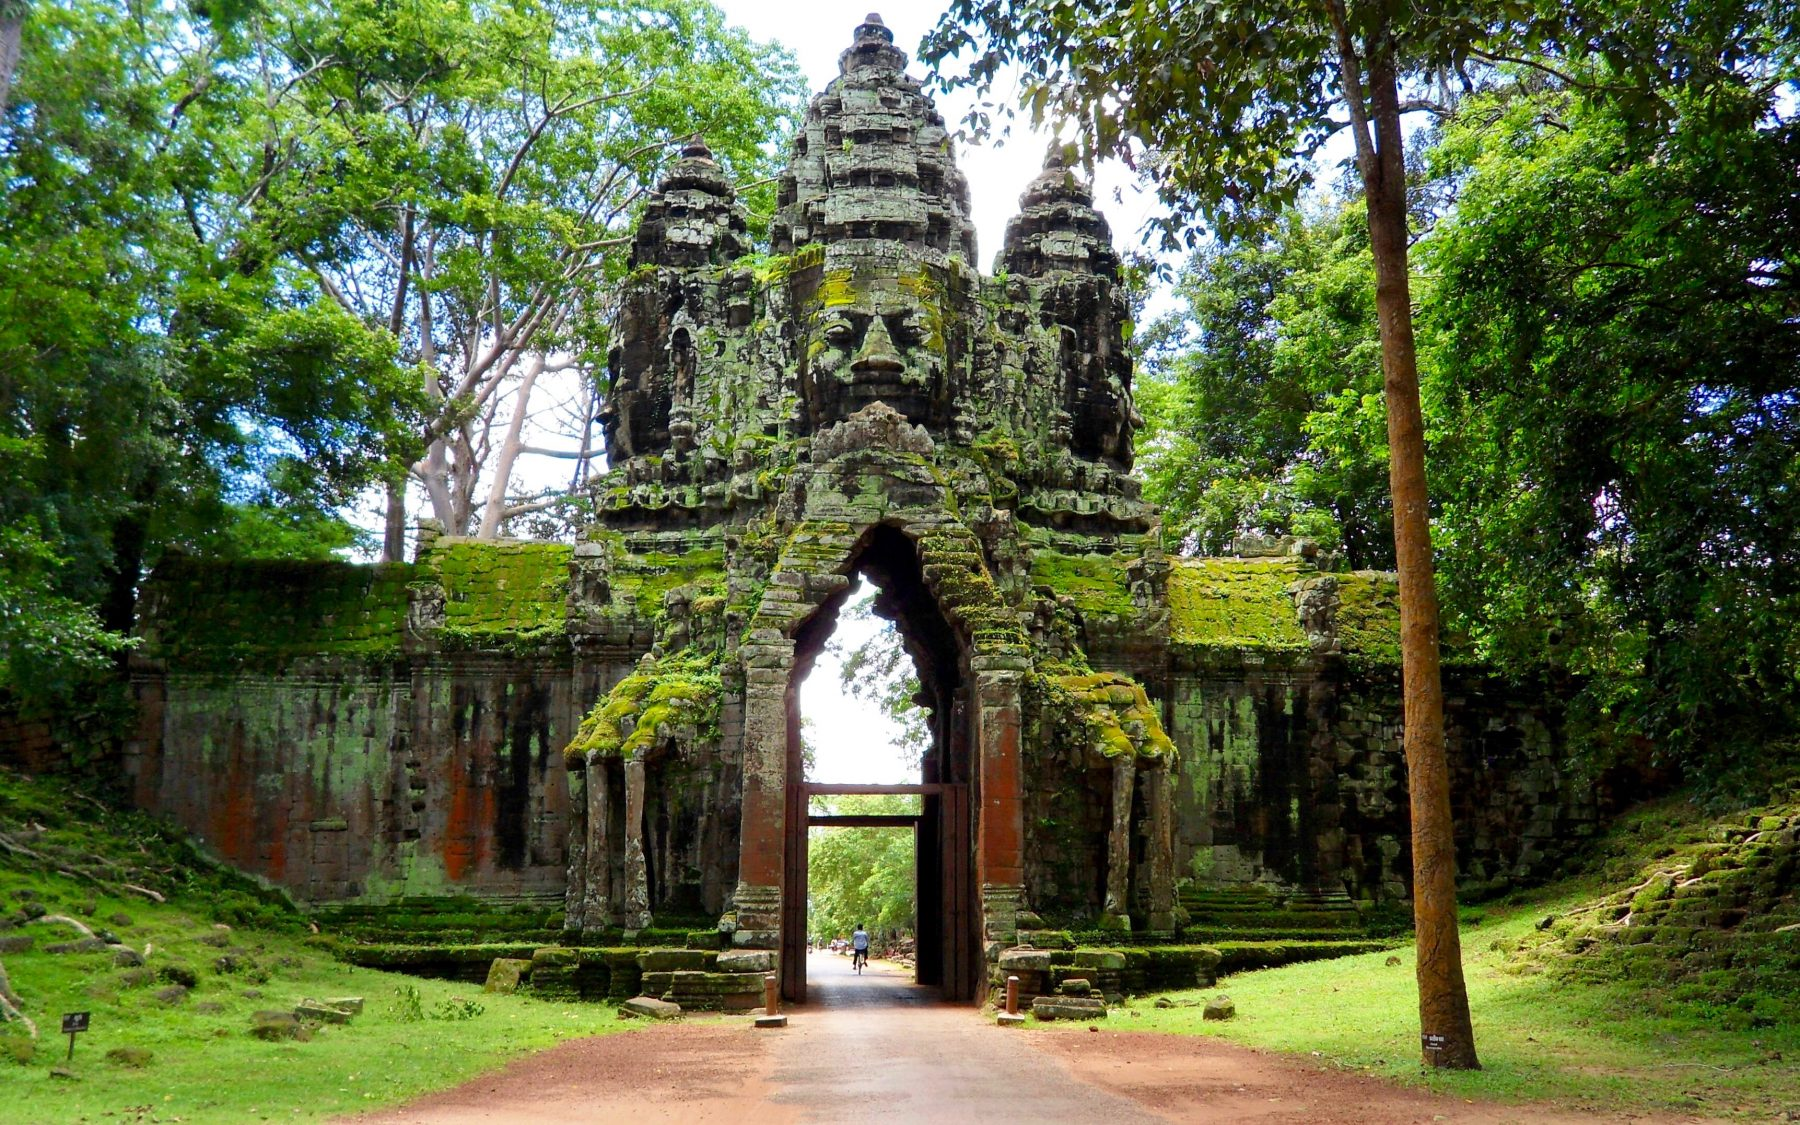 Must See Temples Getting Our Tomb Raider On At Angkor Wat